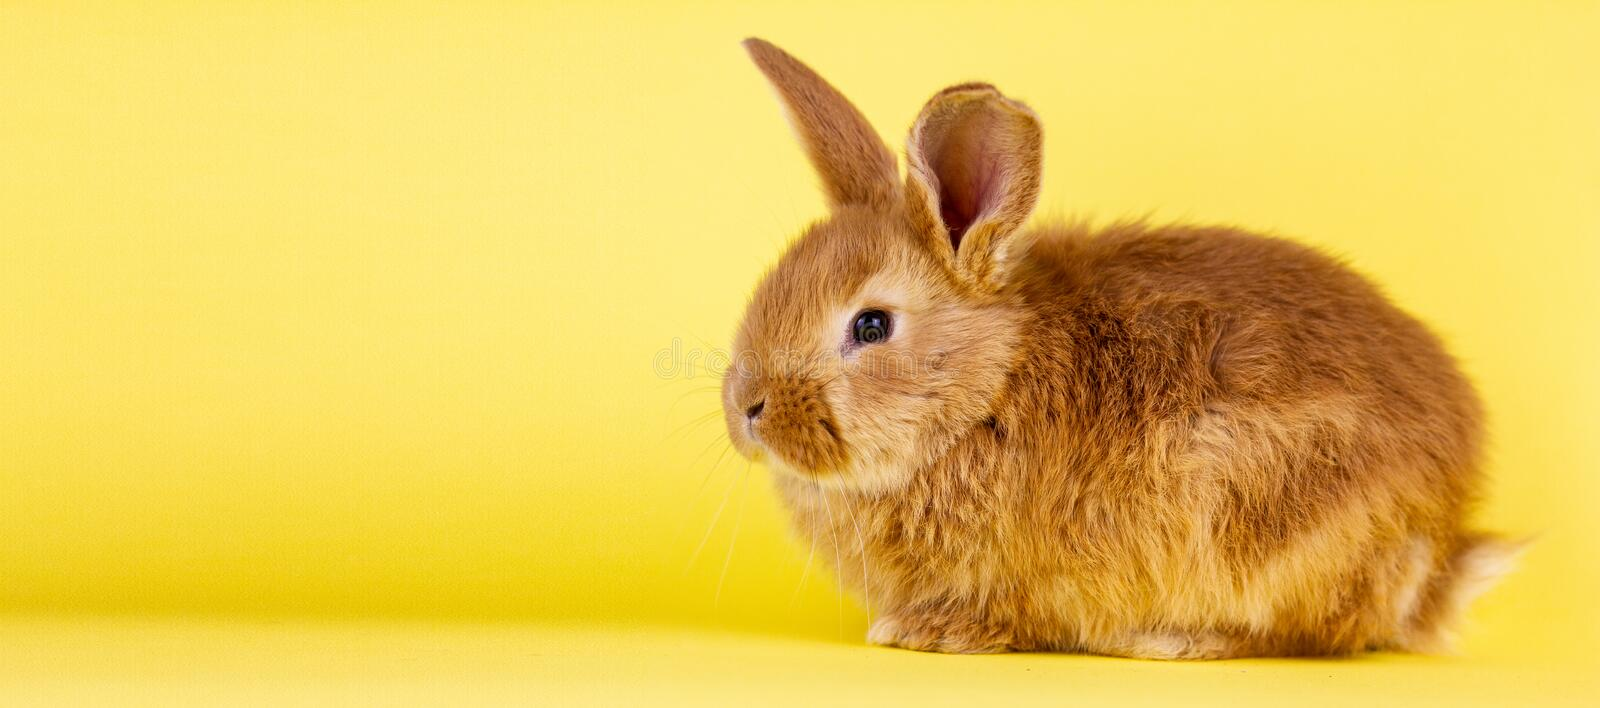 Little easter lively rabbit on a yellow background. Red fluffy rabbit on a yellow background, banner picture. Easter Bunny stock photography